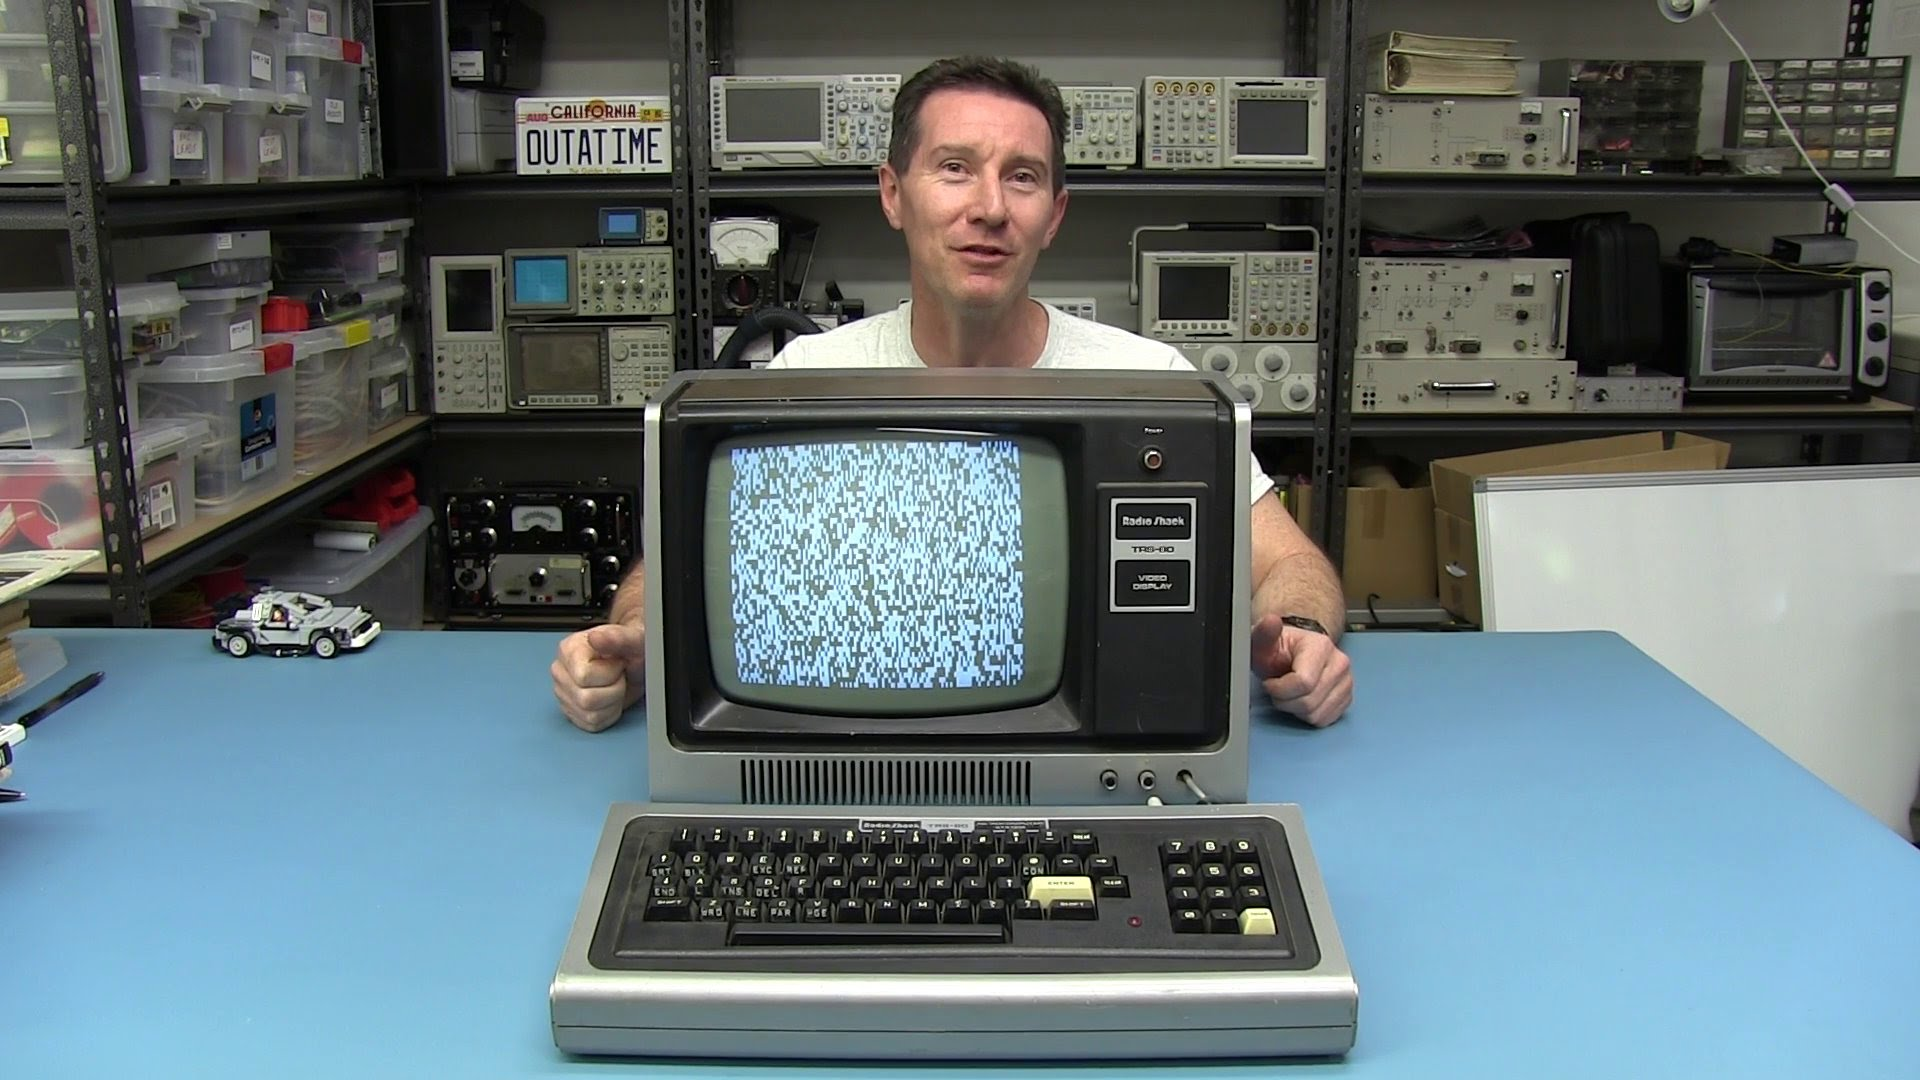 EEVblog #645 – TRS-80 Model I Retro Computer Teardown